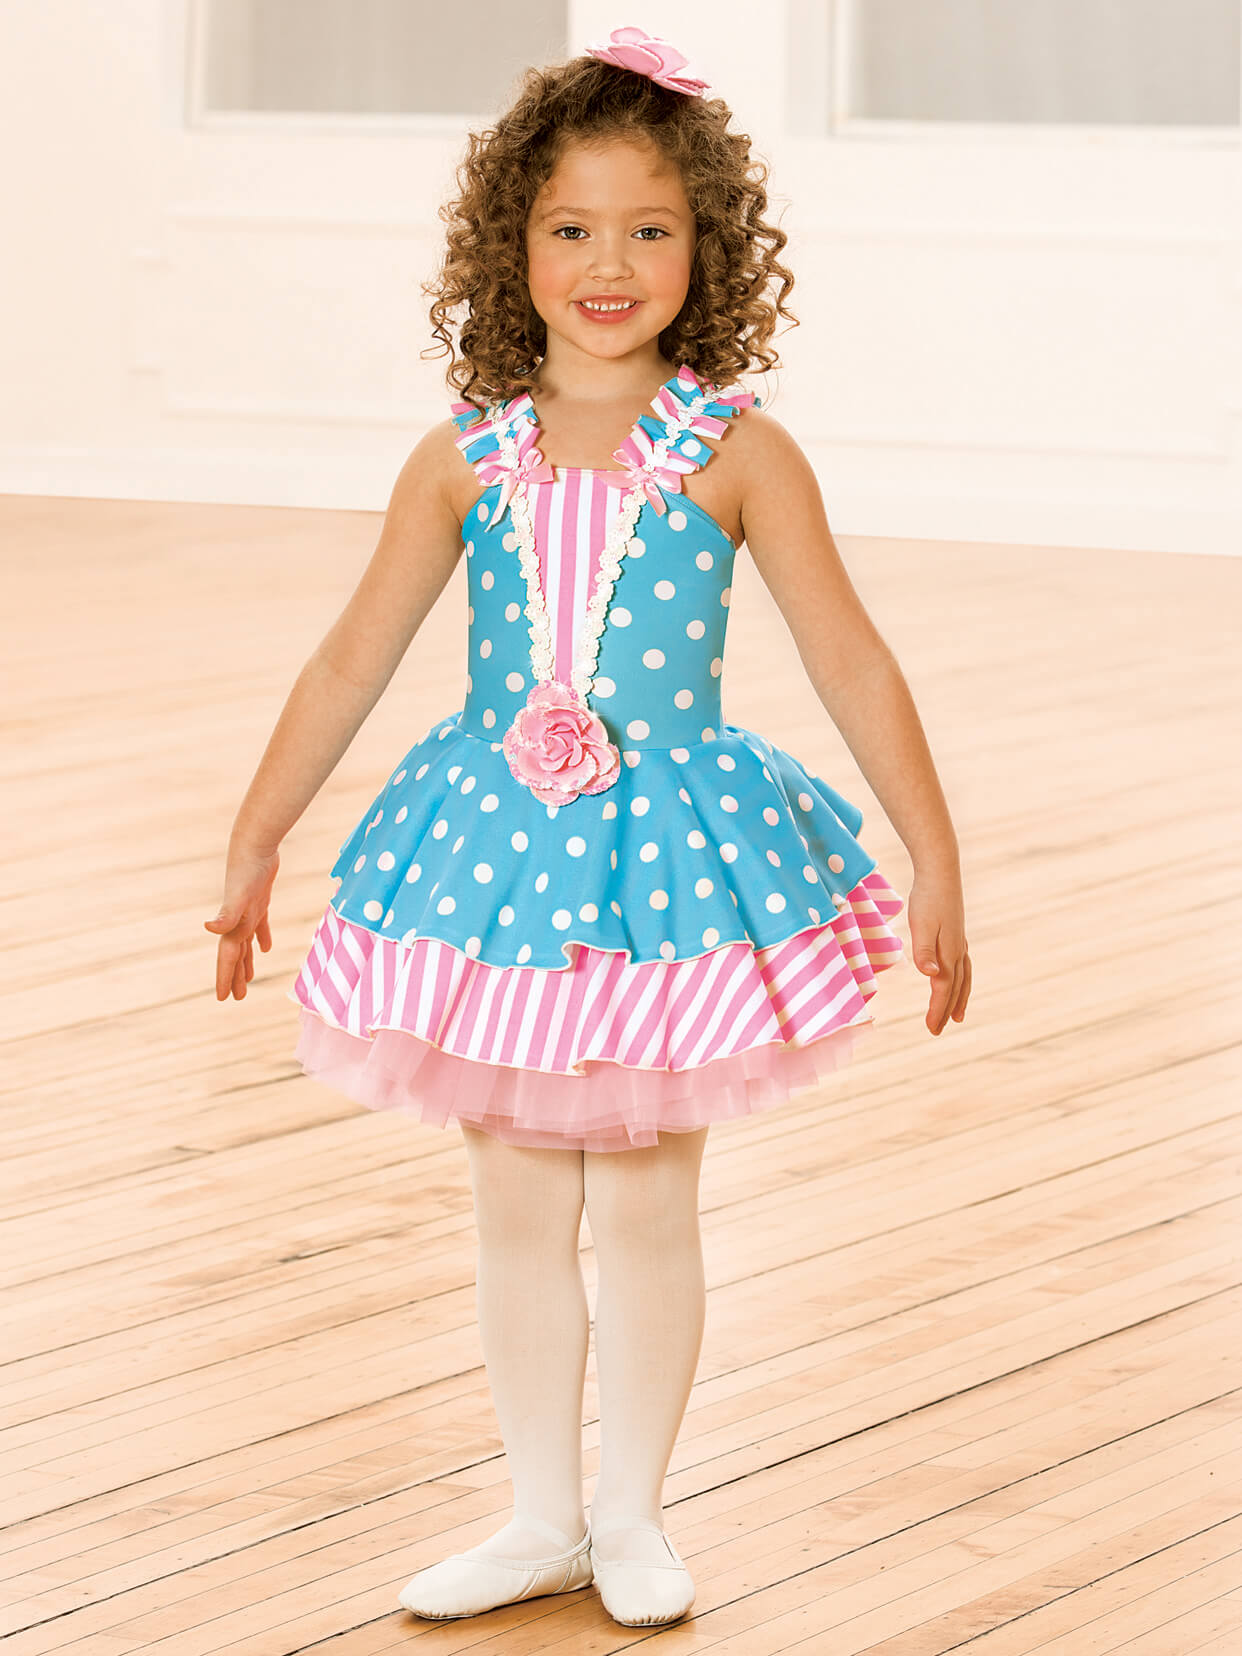 Candy Man Can  sc 1 st  Dance Forever Costumes & Candy Man Can | Dance Costumes Australia